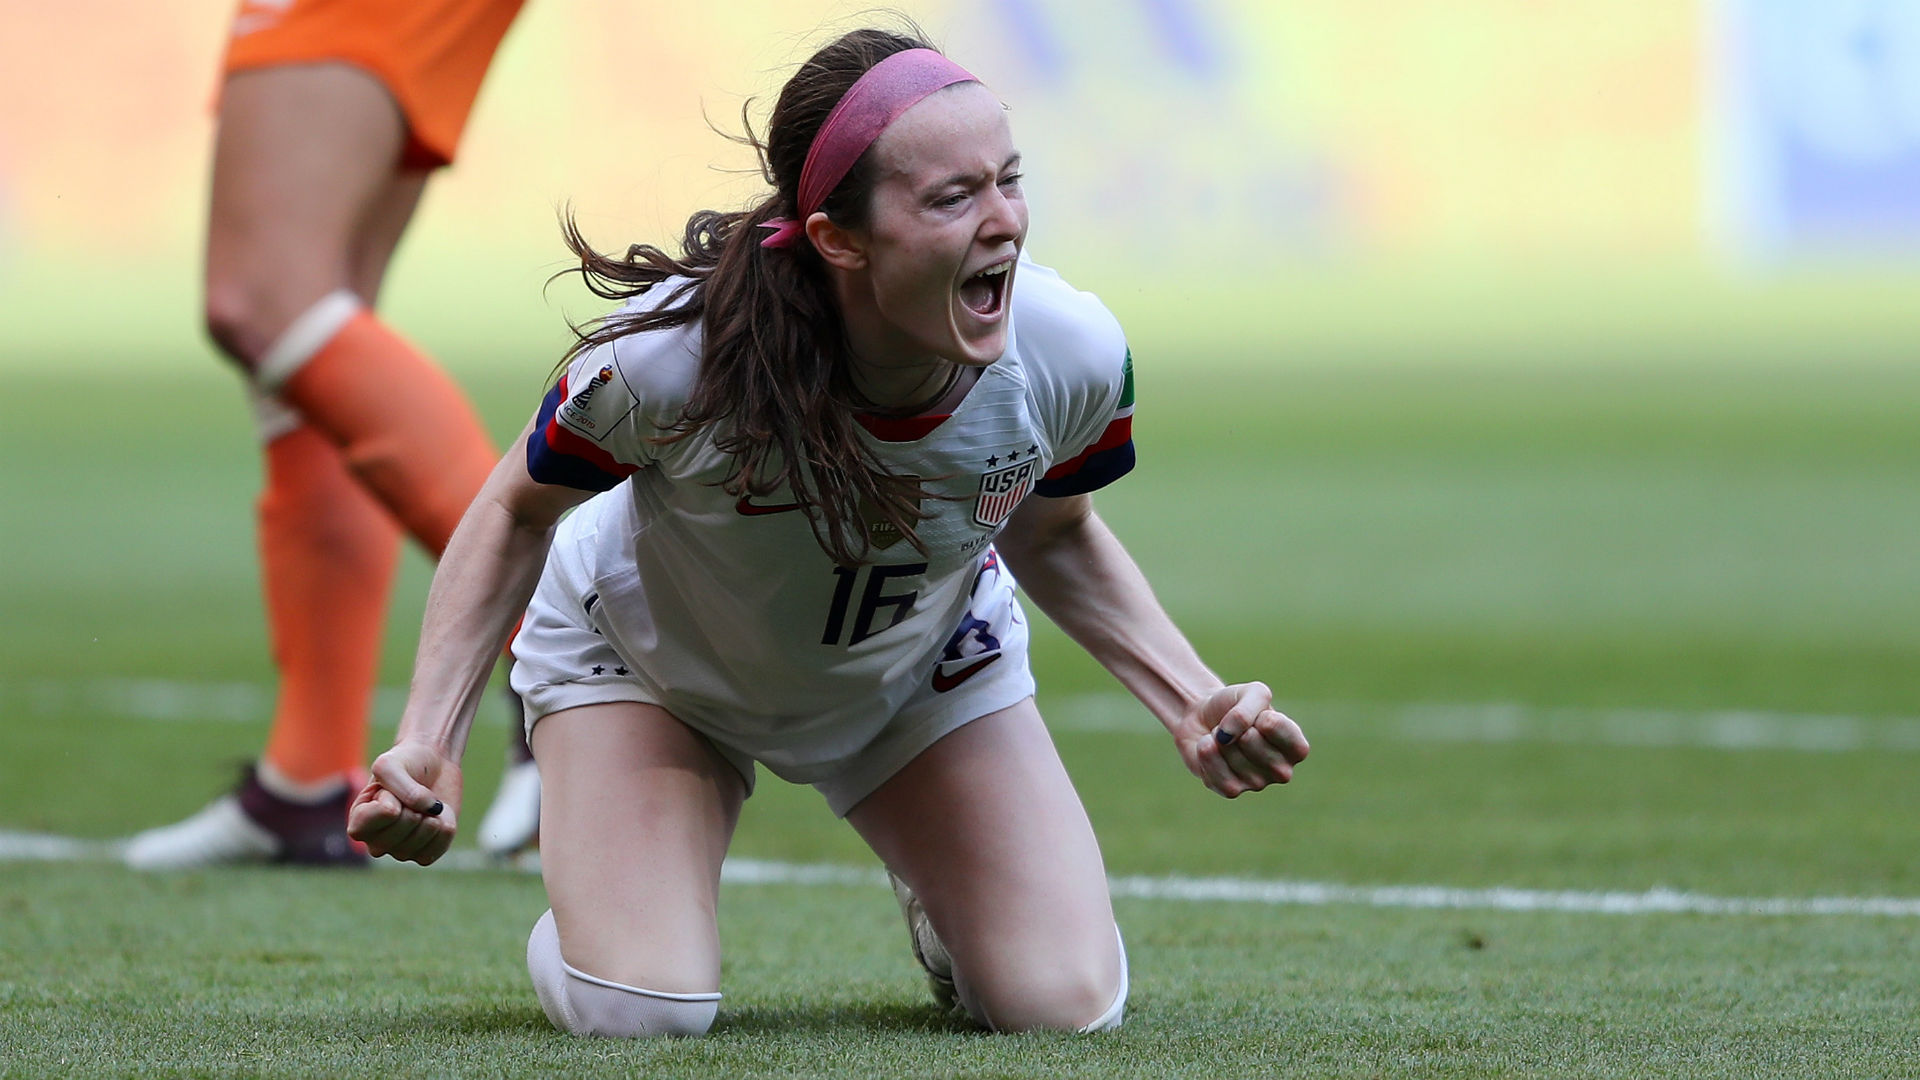 'It's wild how far I've come' - Lavelle shines as USWNT's breakout World Cup star